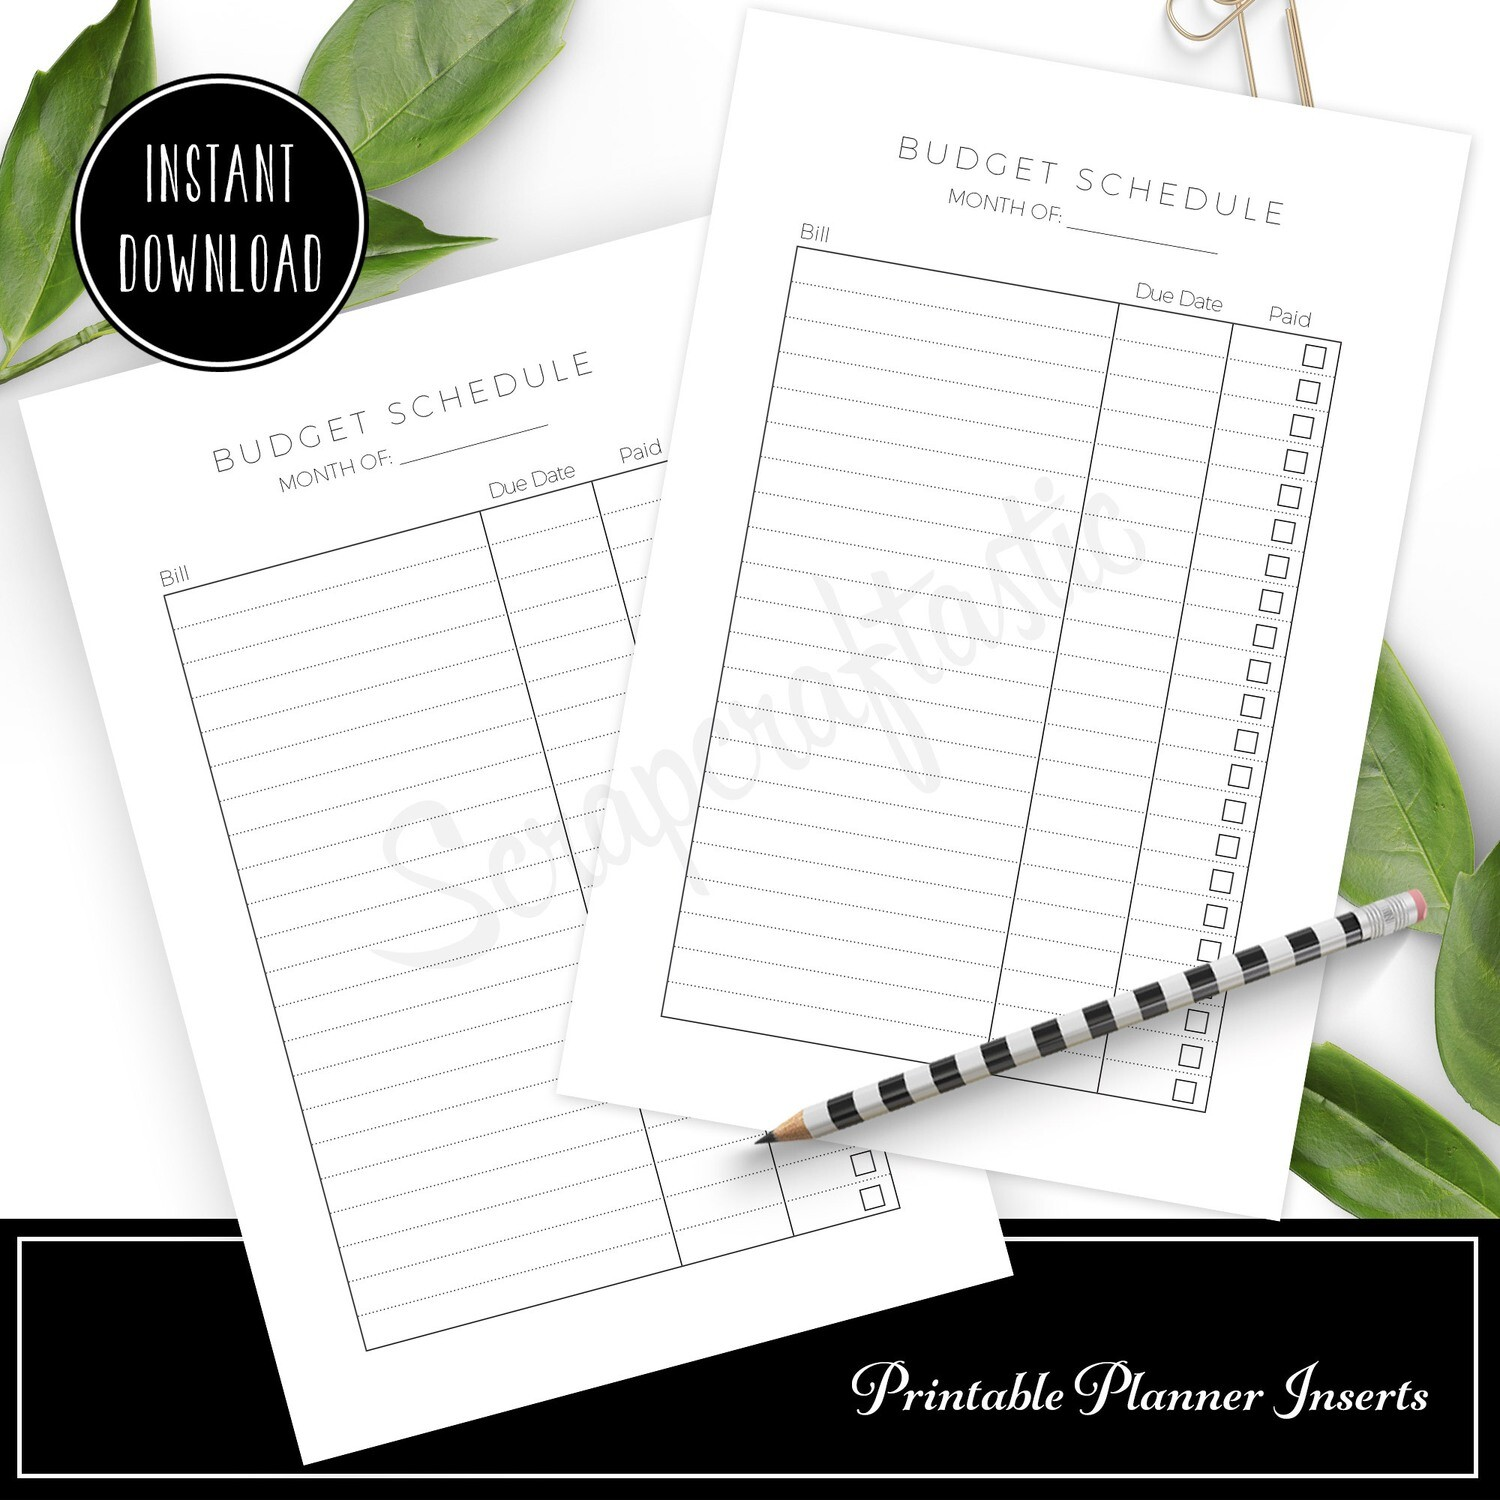 A6 - Monthly Budget Schedule Printable Planner Inserts